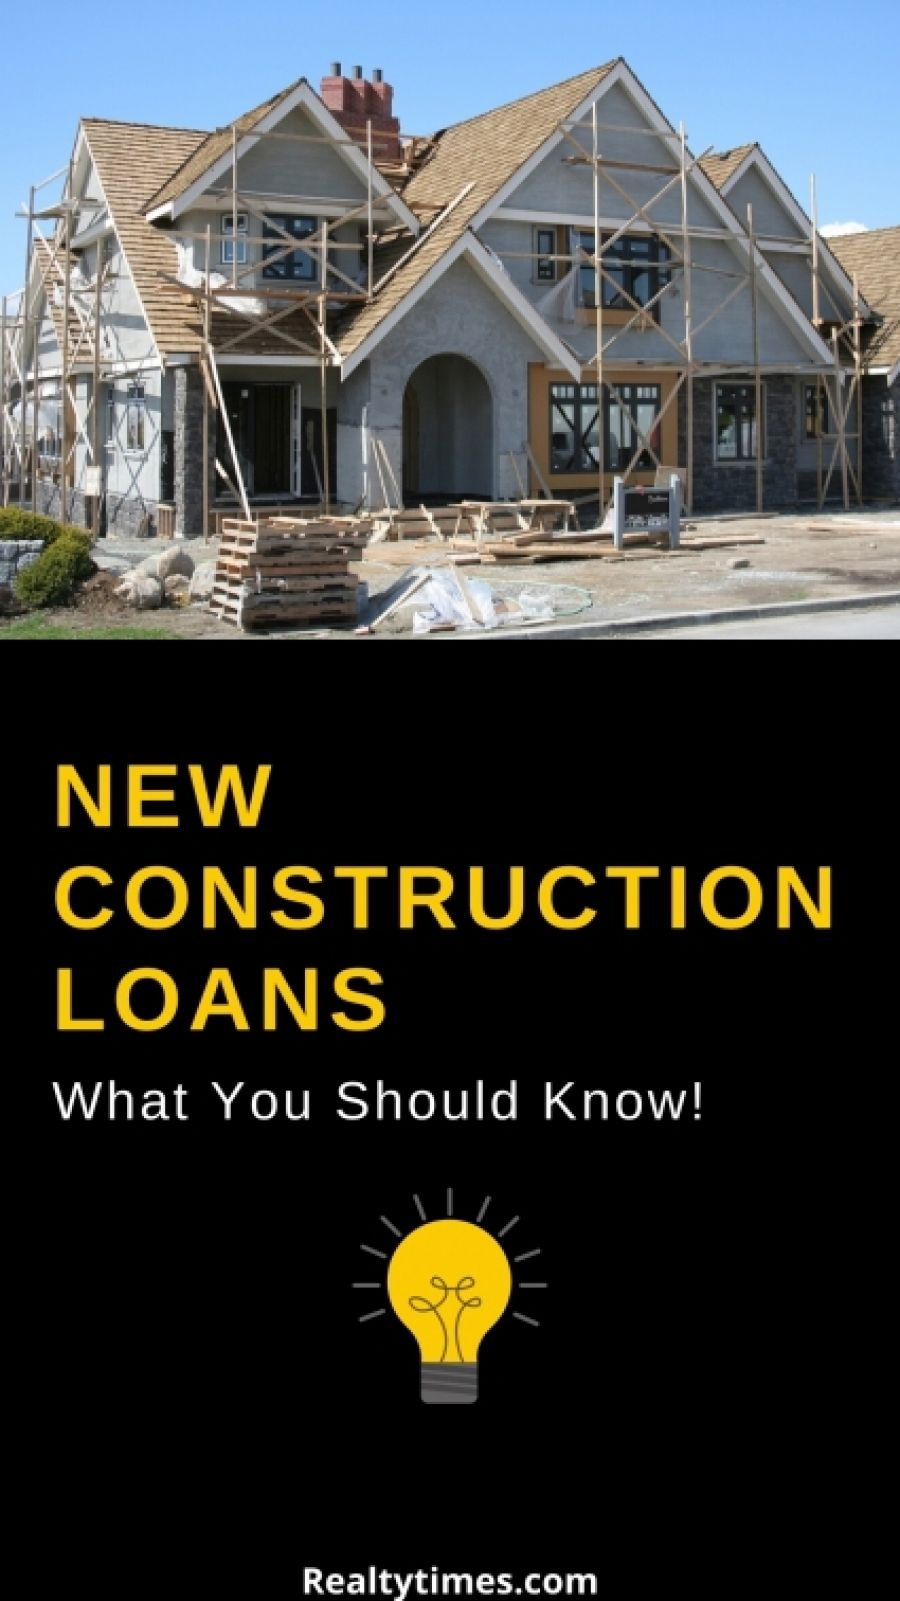 Home Construction Loans What You Need To Know Realty Times In 2020 Construction Loans Real Estate Advice Real Estate Marketing